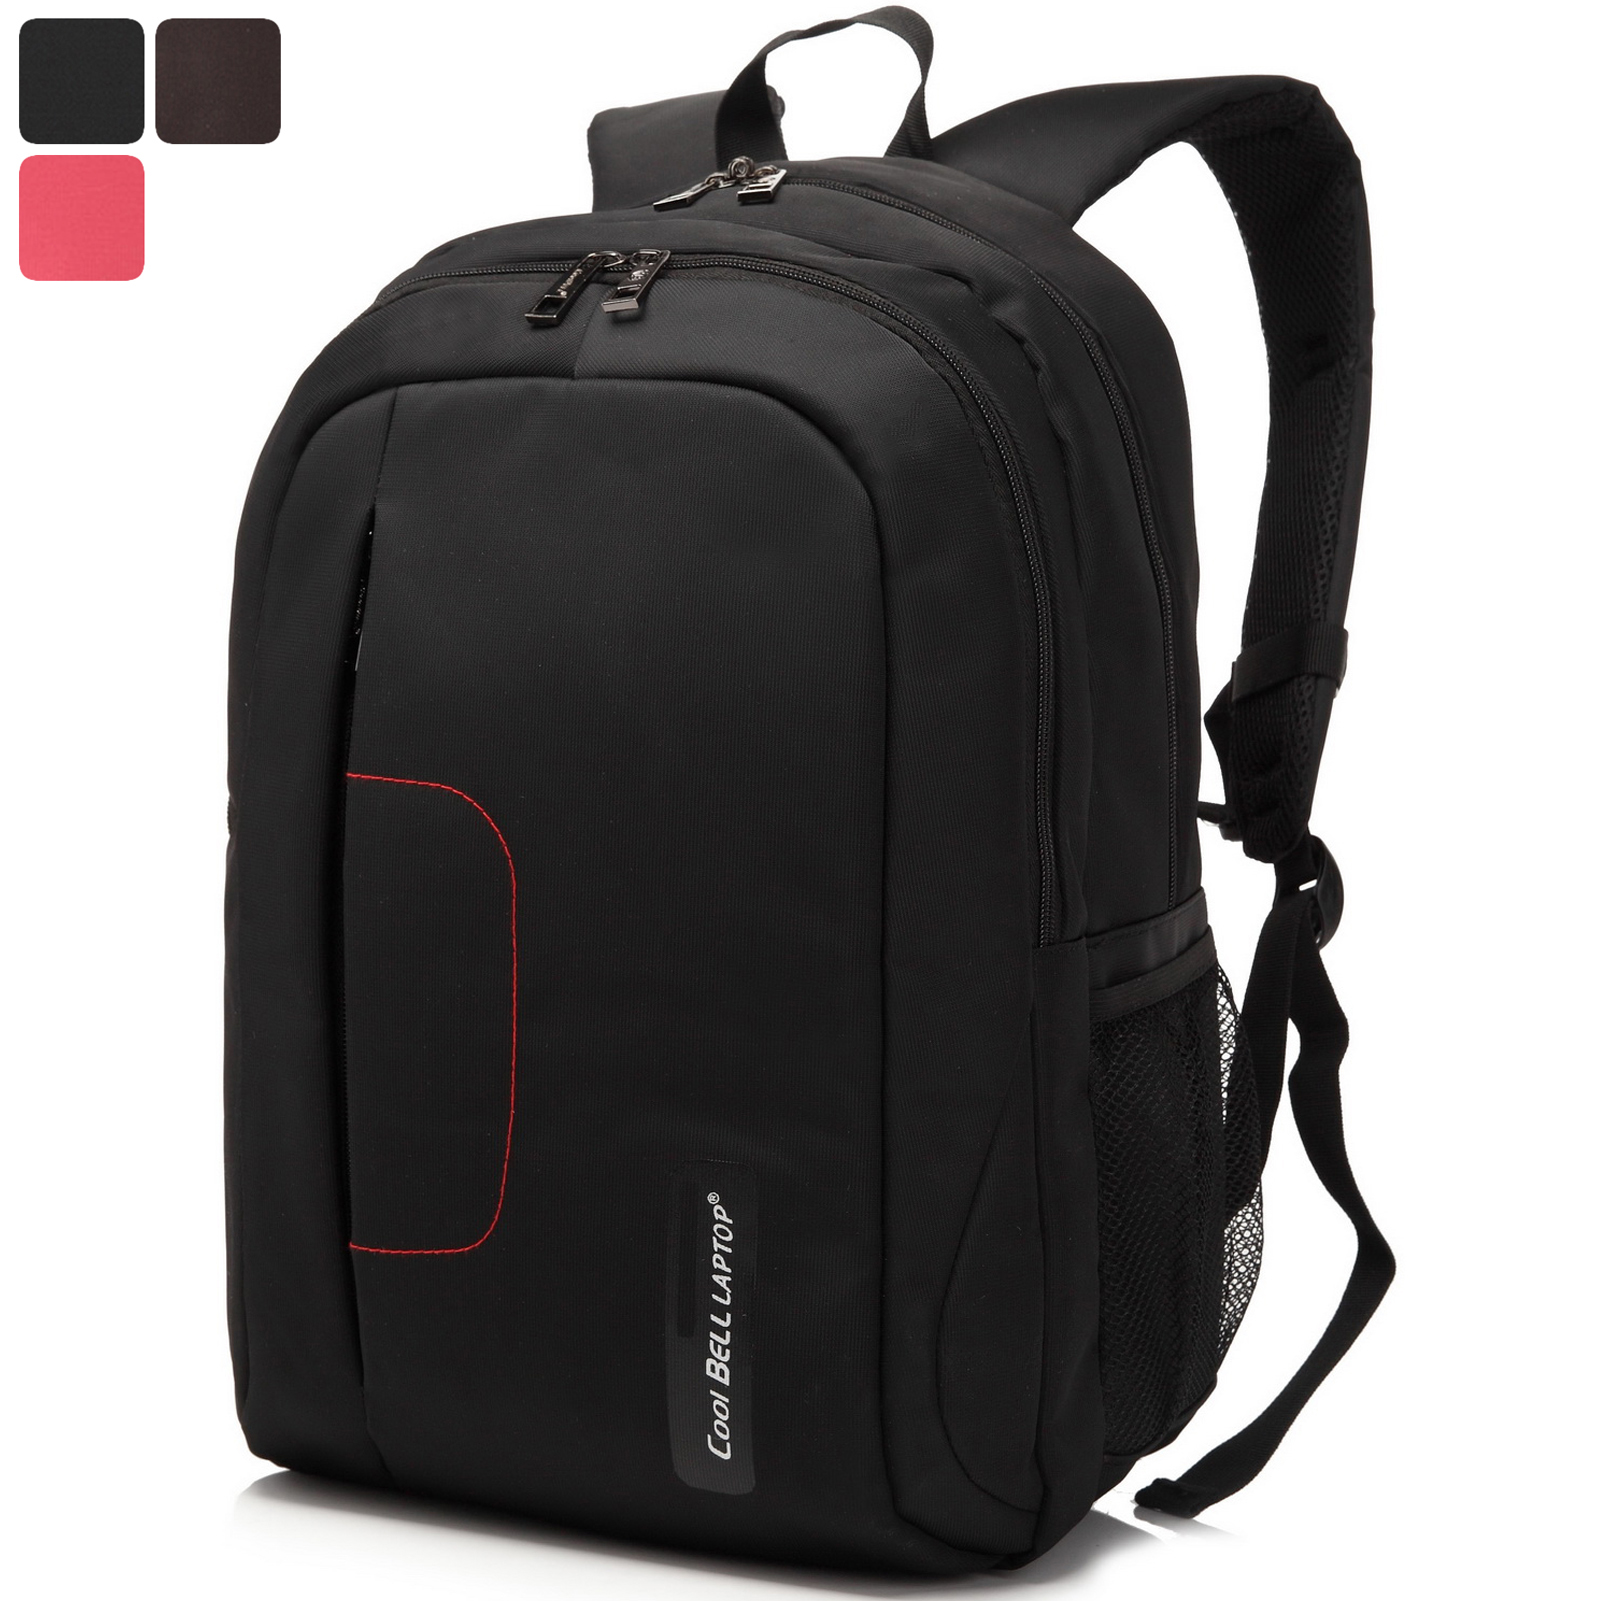 Details about 15.6 inch Waterproof Laptop Shoulder Backpack Rucksack Travel  Notebook Carry Bag 4d1b205a247e6